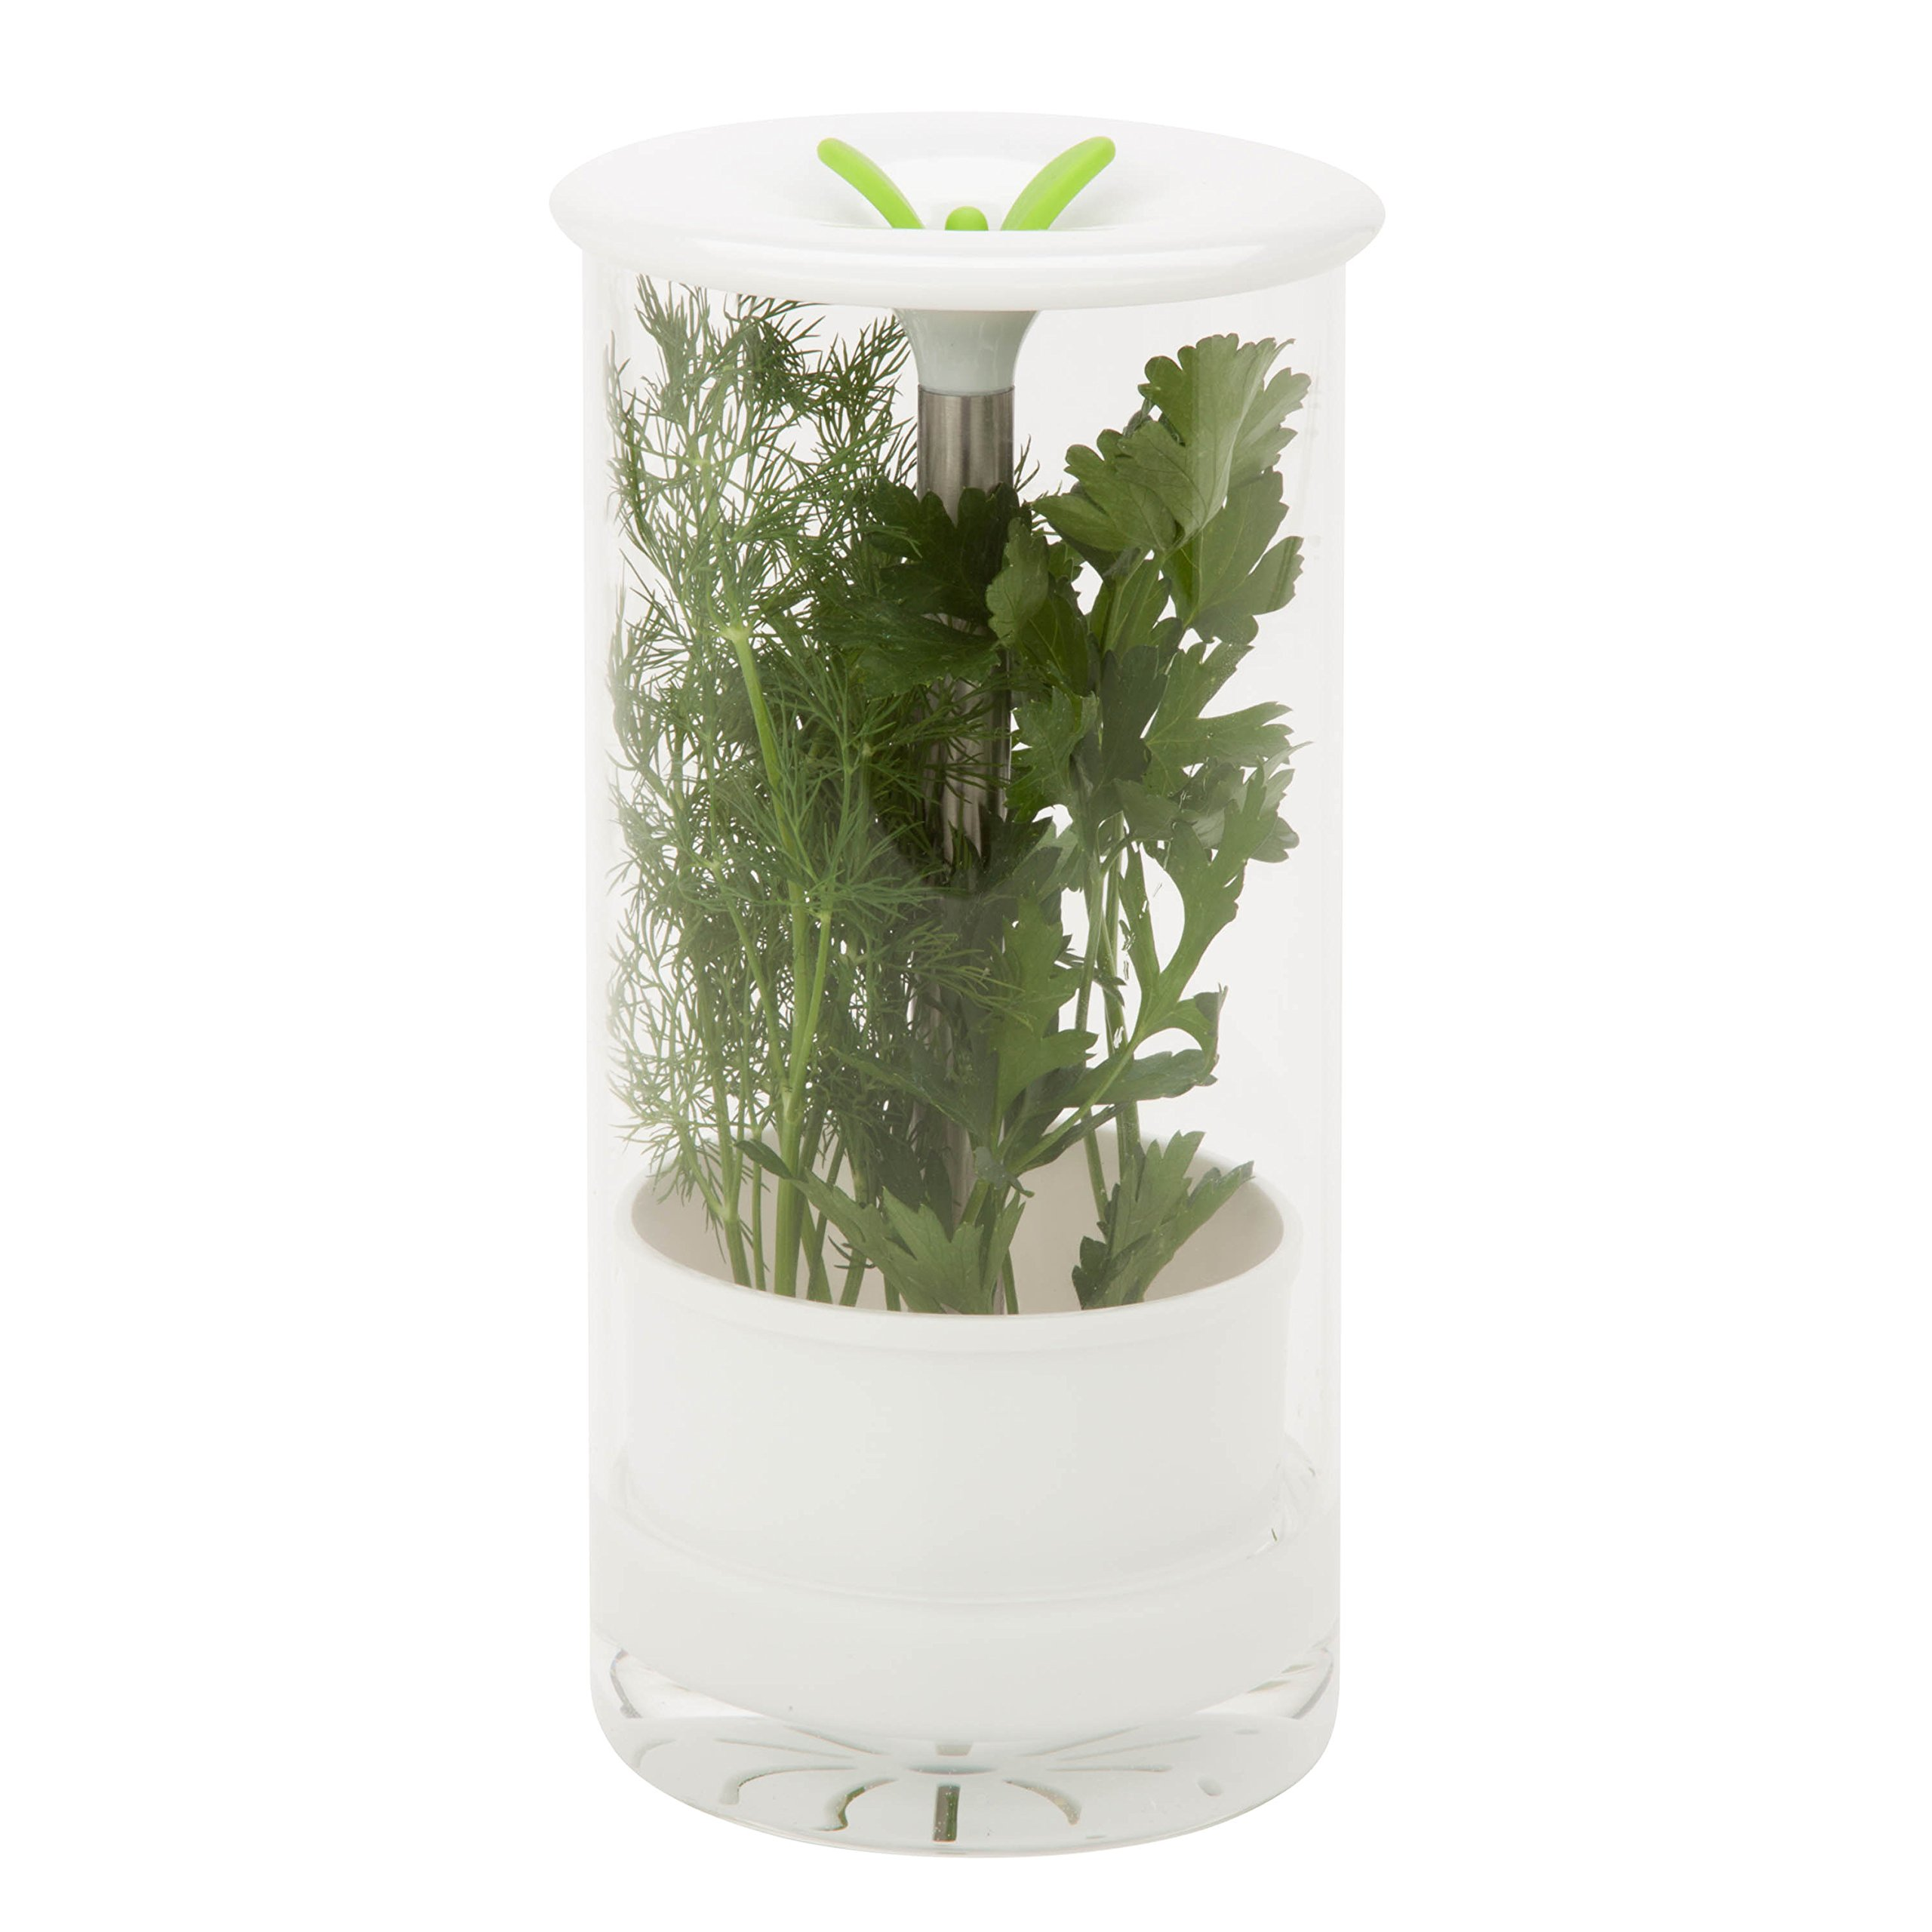 Honey-Can-Do KCH-06398 Glass Herb Preserver, Clear/White by Honey-Can-Do